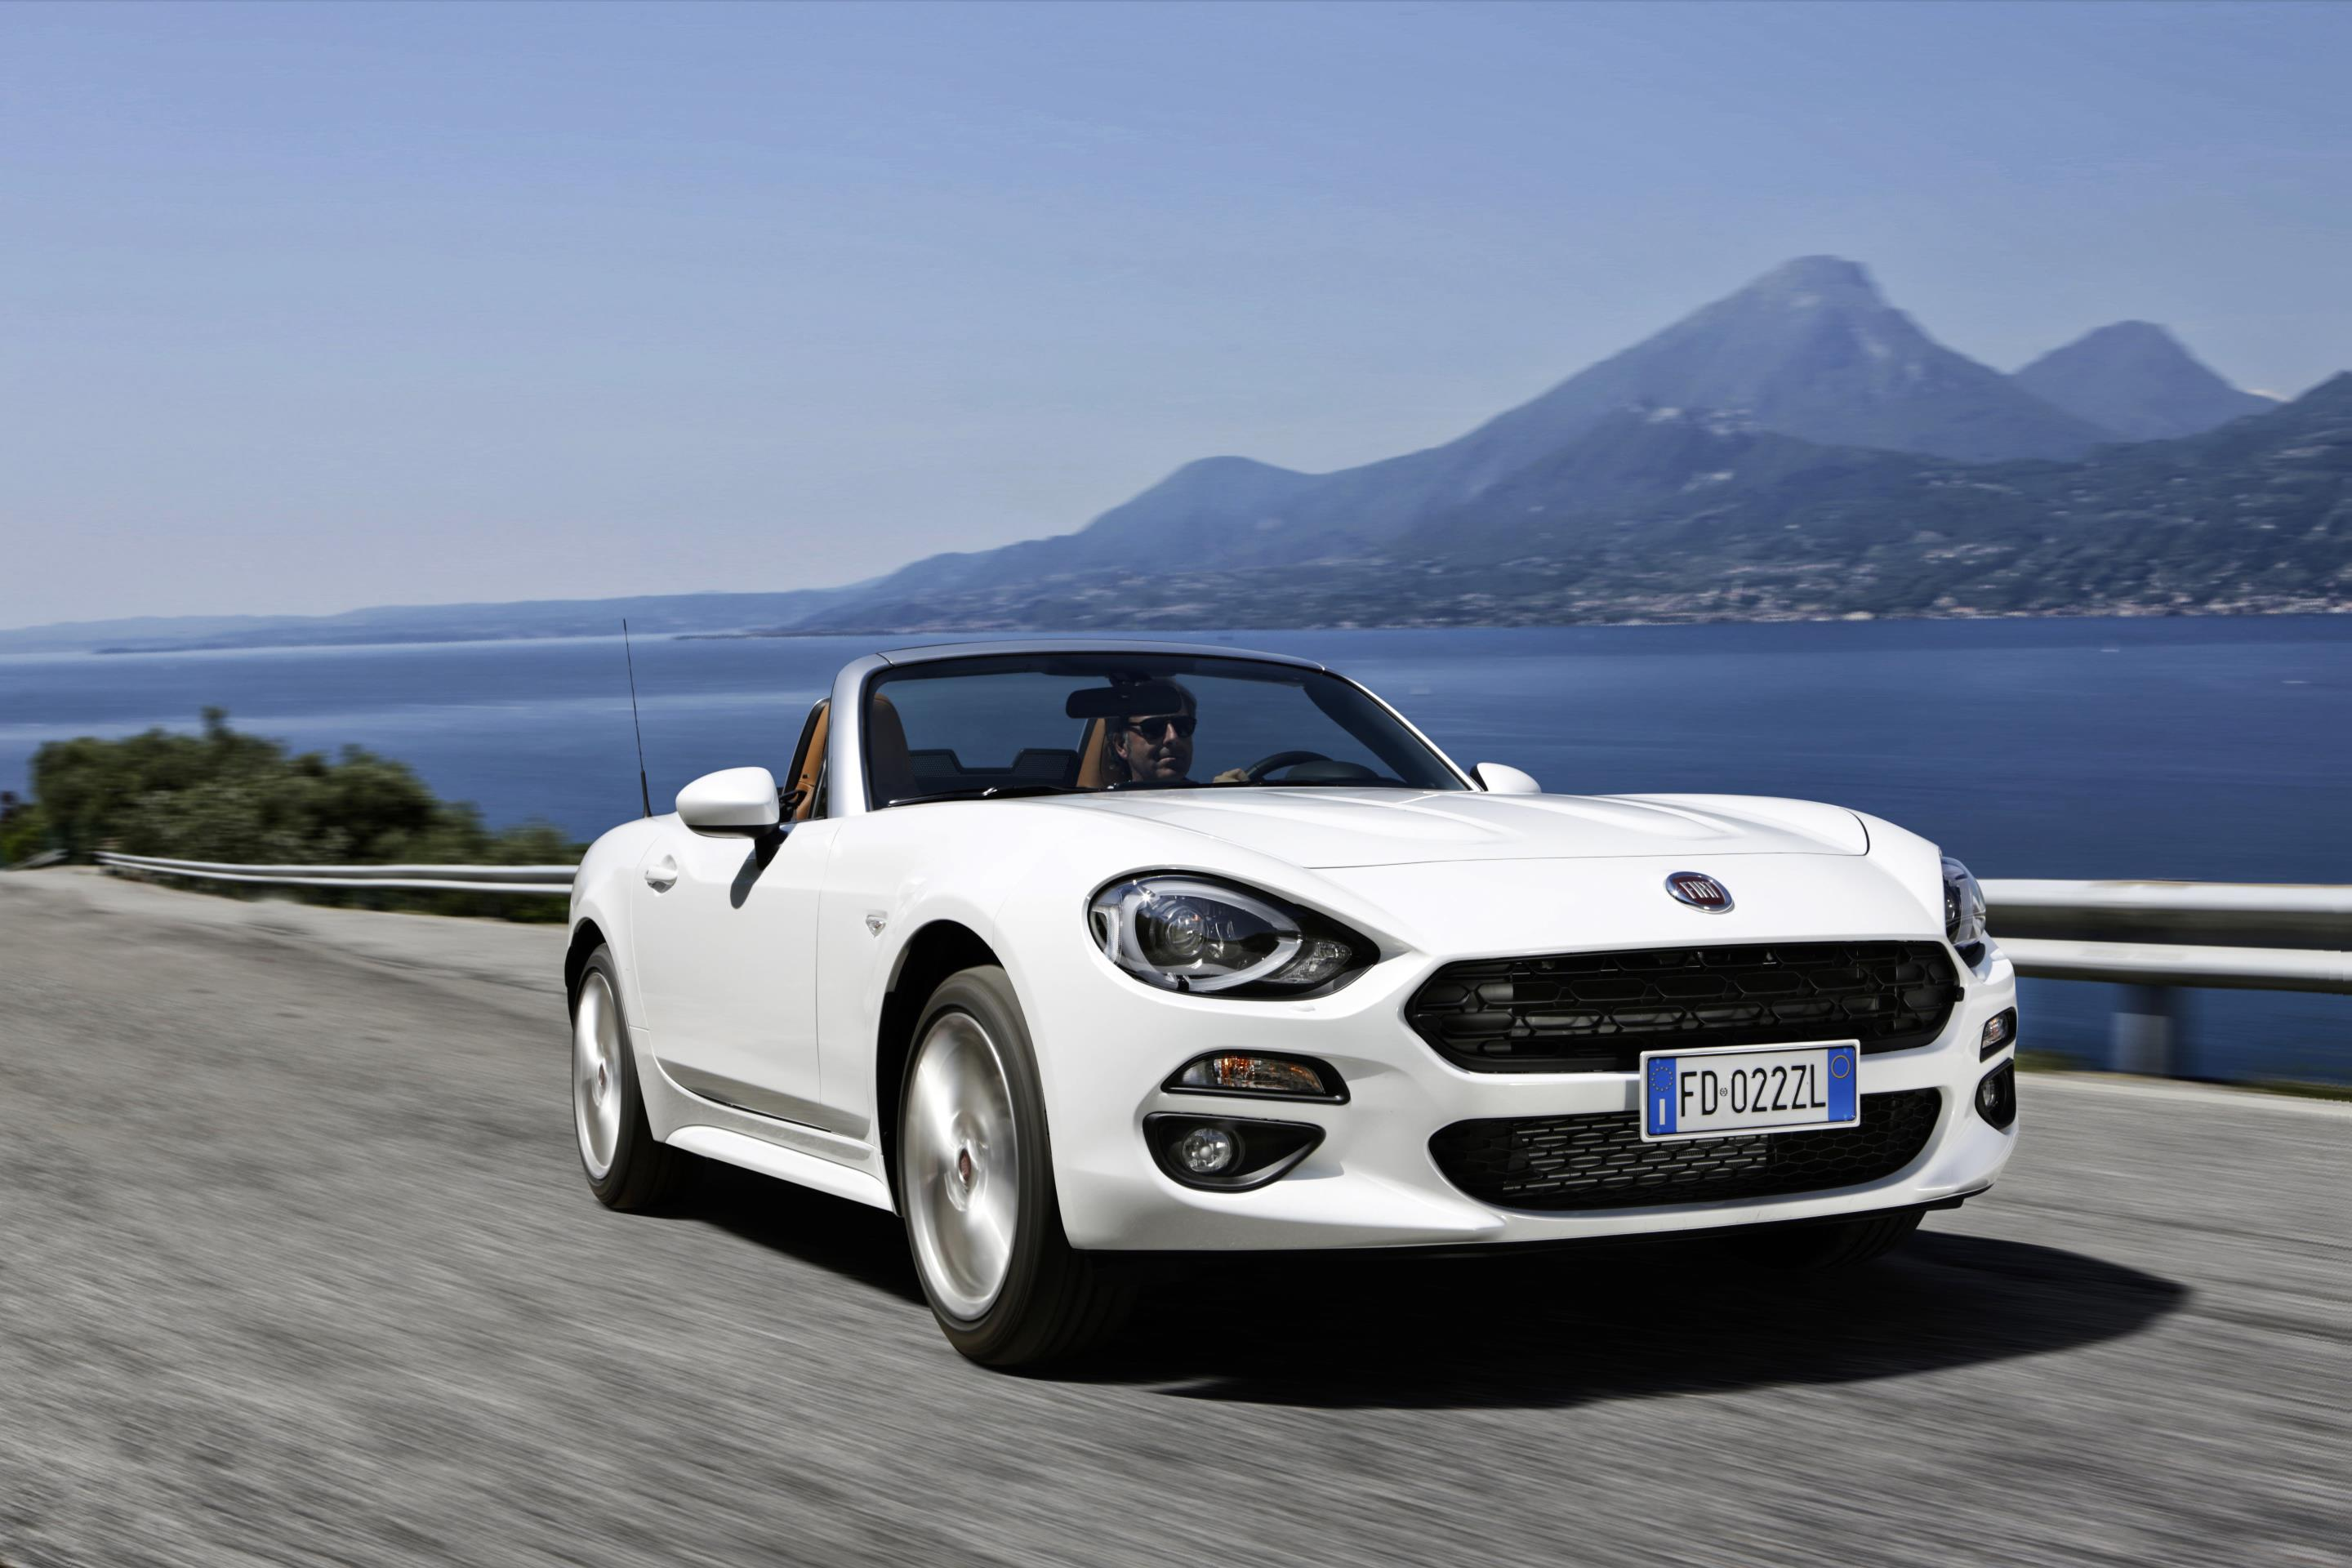 fiat-124-spider-named-european-gay-car-of-the-year-2017_4